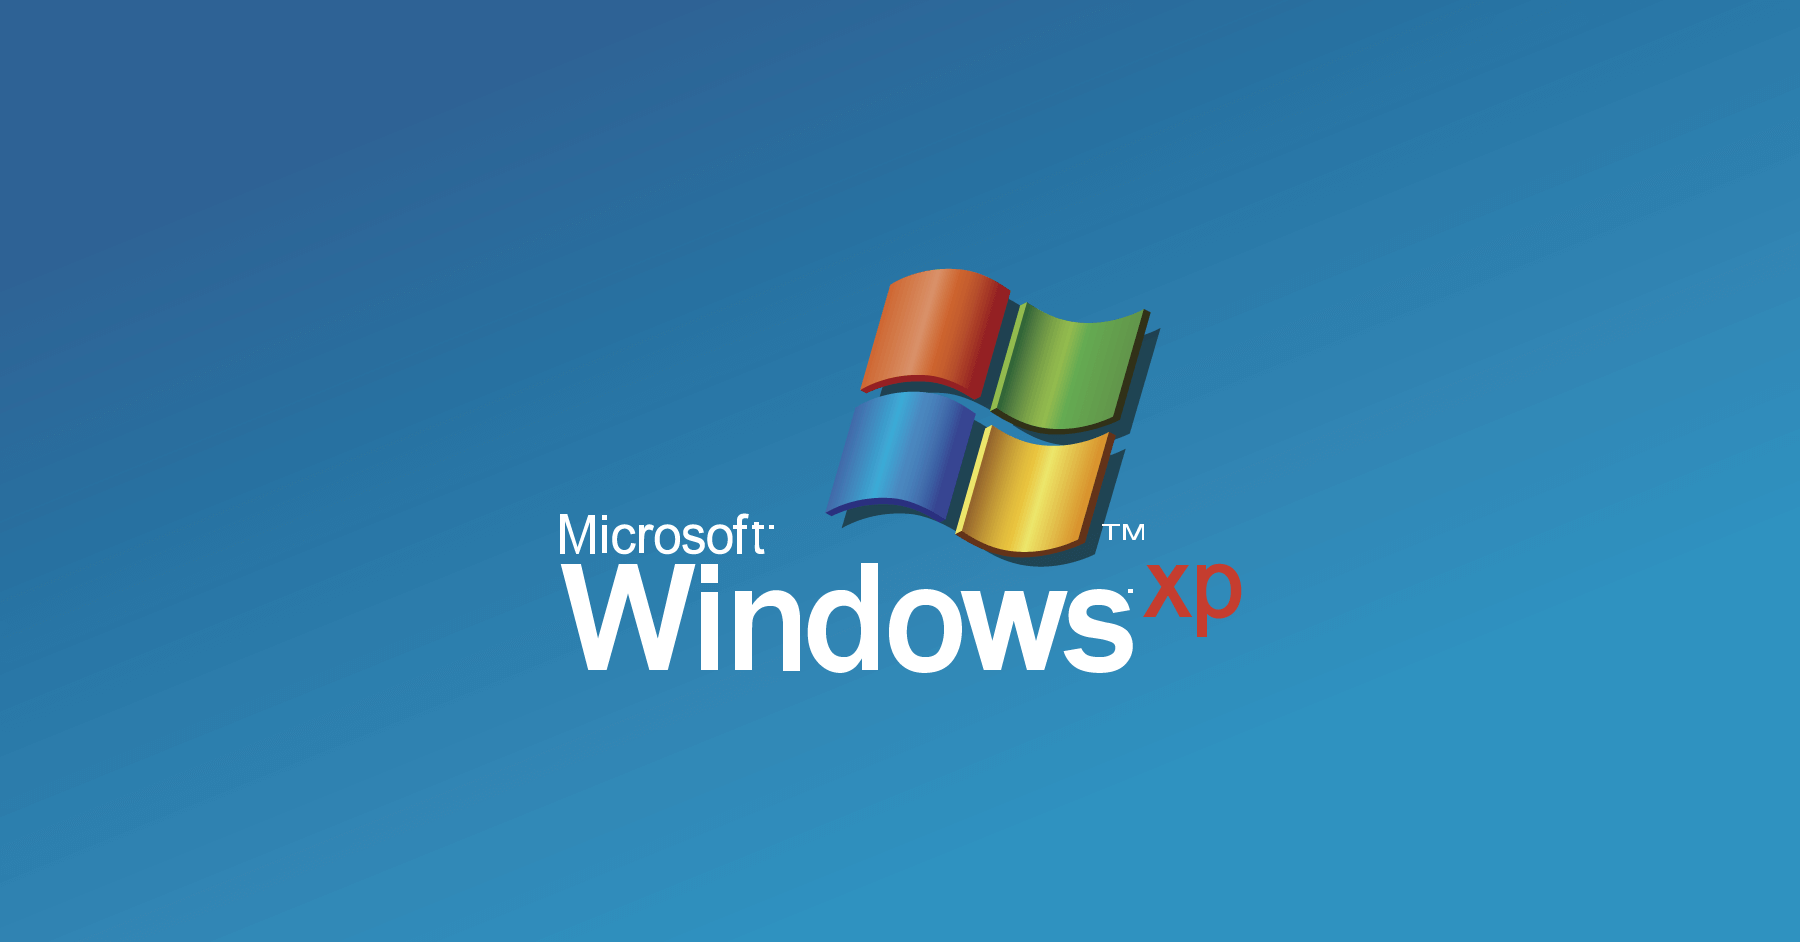 Windows XP ロゴ